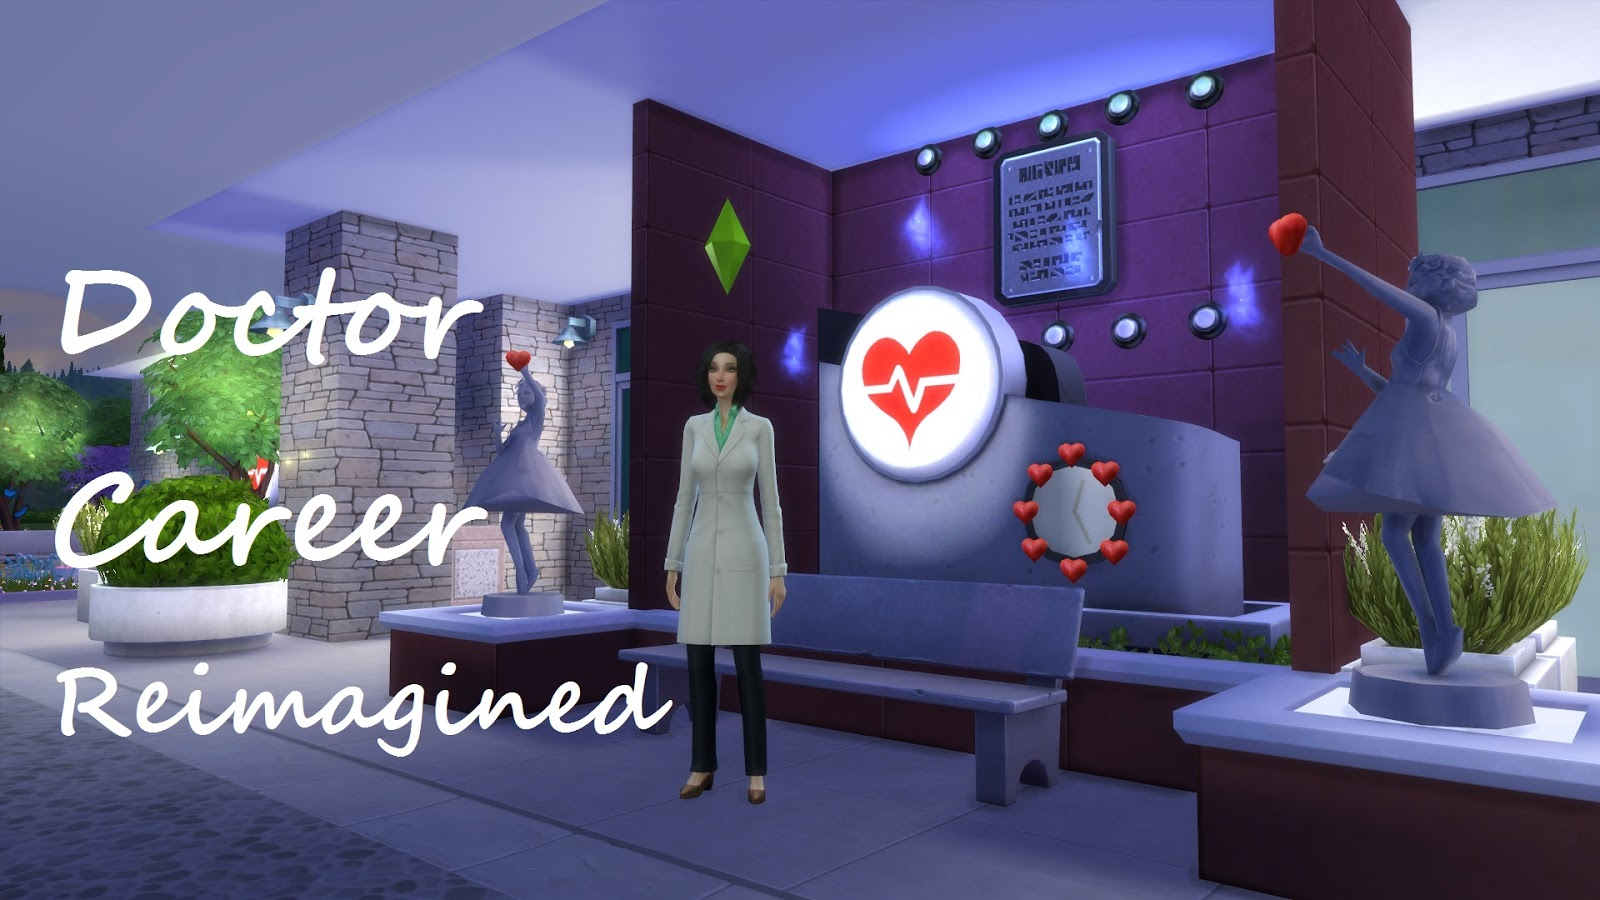 my sims blog doctor career reimagined by coolspear doctor career reimagined by coolspear1